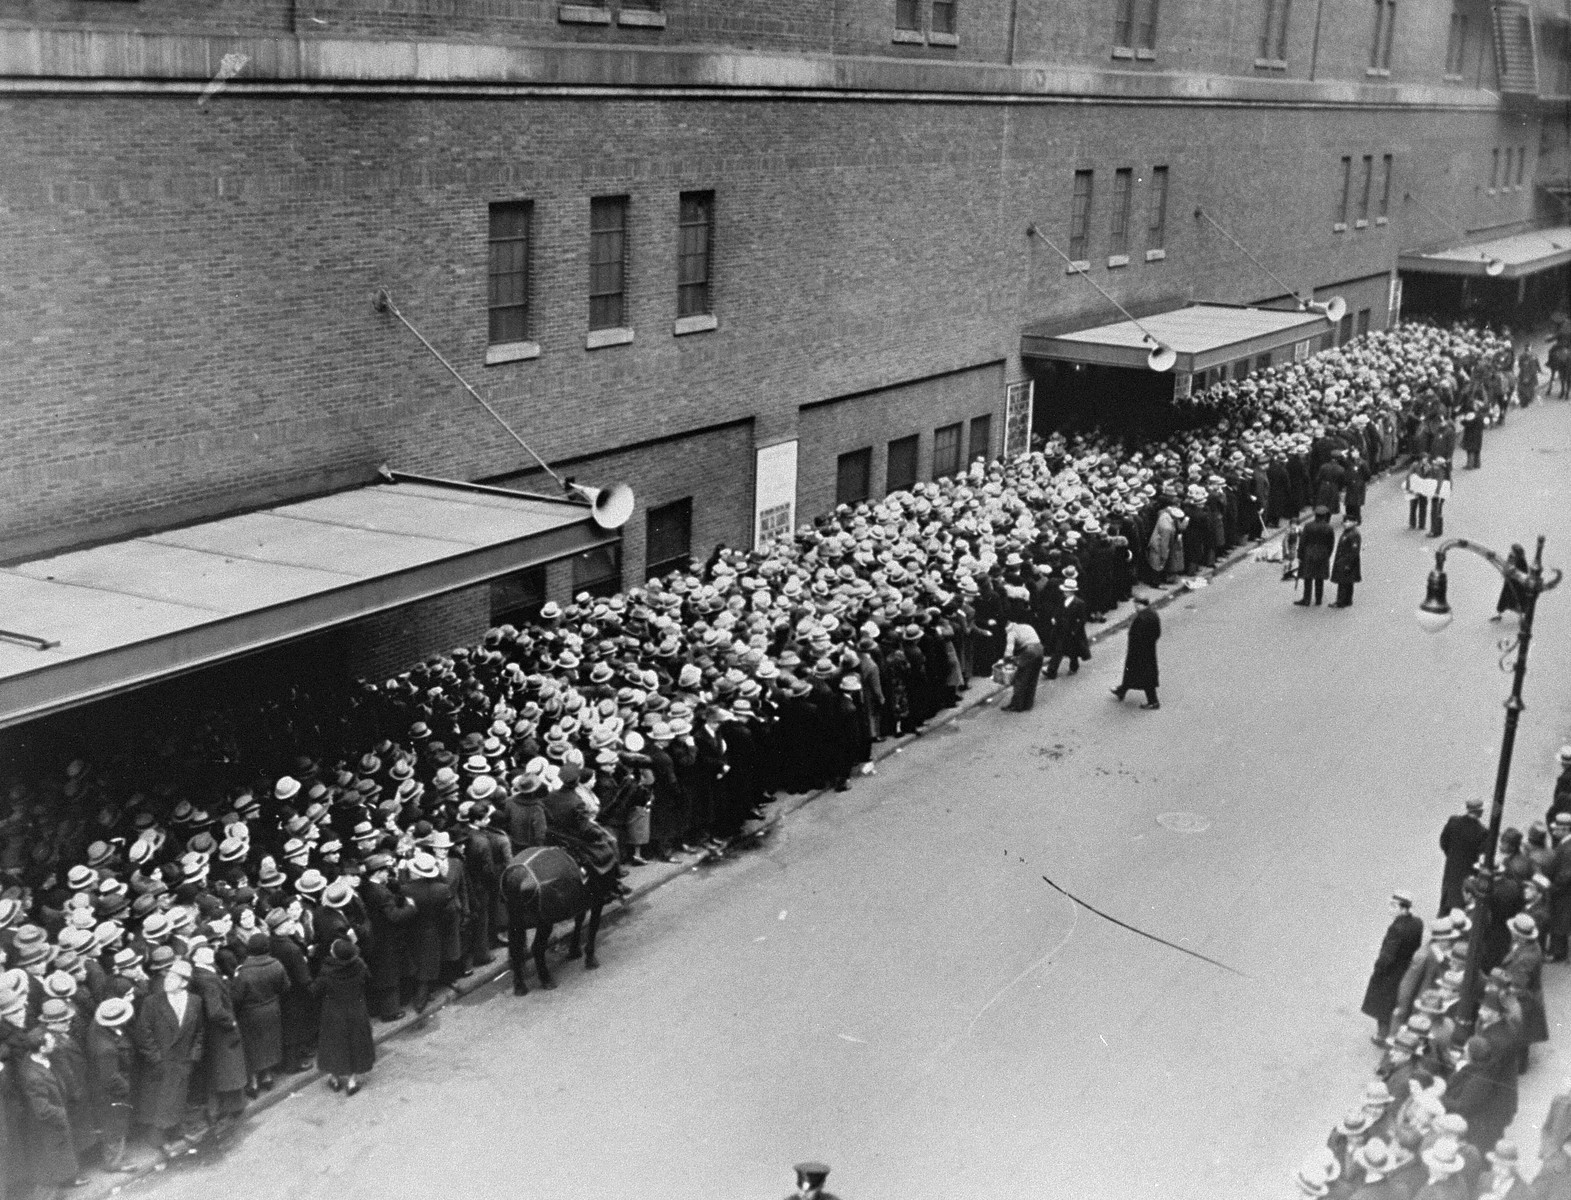 View of people queued up at the entrance to Madison Square Garden, where a mass demonstration is scheduled for later in the day to protest against the Nazi persecution of German Jews.  More than 250,000 people are expected to attend the event which will feature addresses by prominent Catholic, Protestant and Jewish speakers.